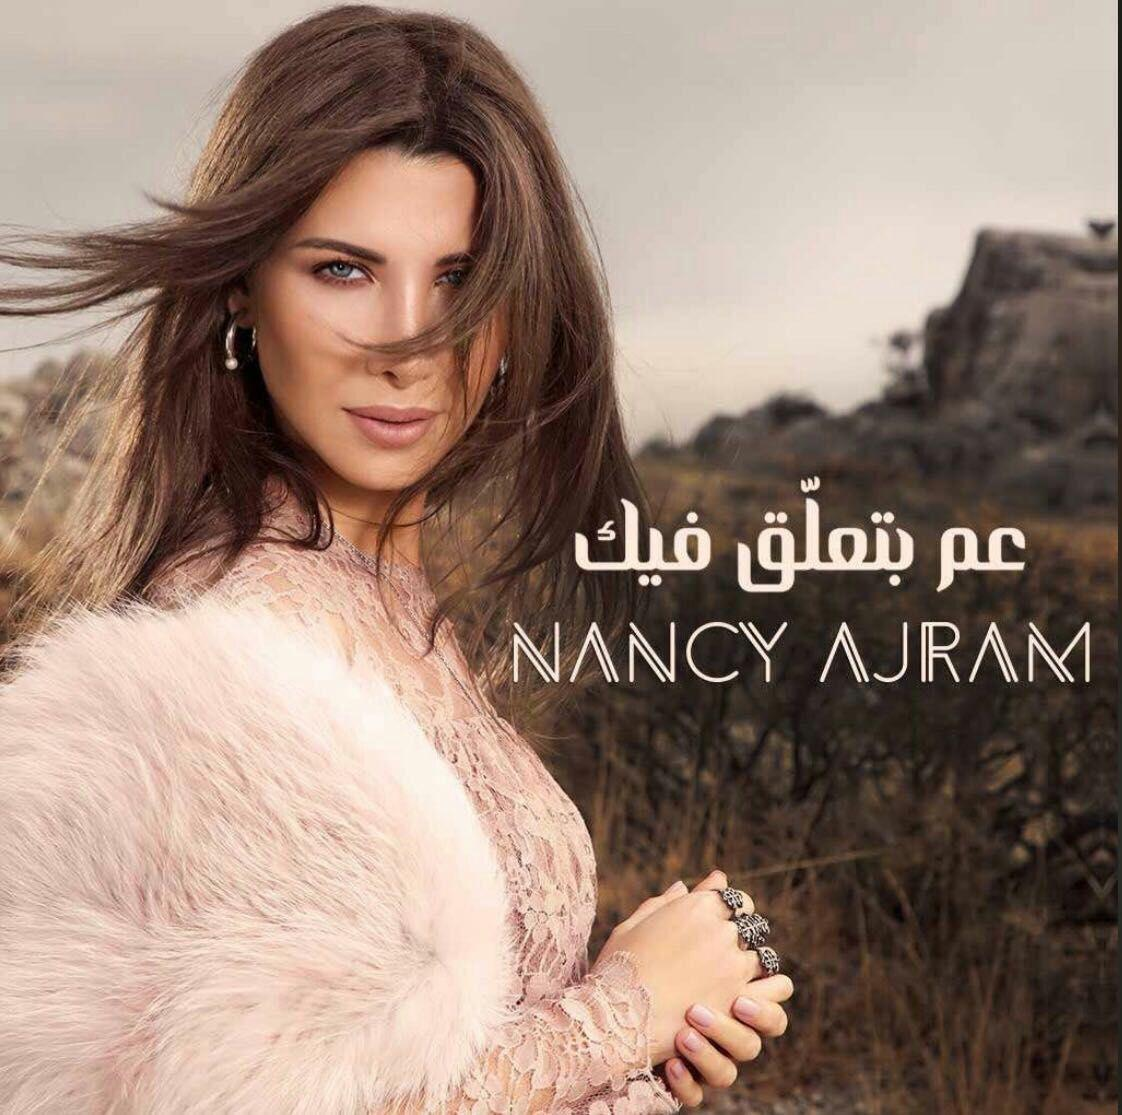 nancy ajram 3am bet3alla2 feek